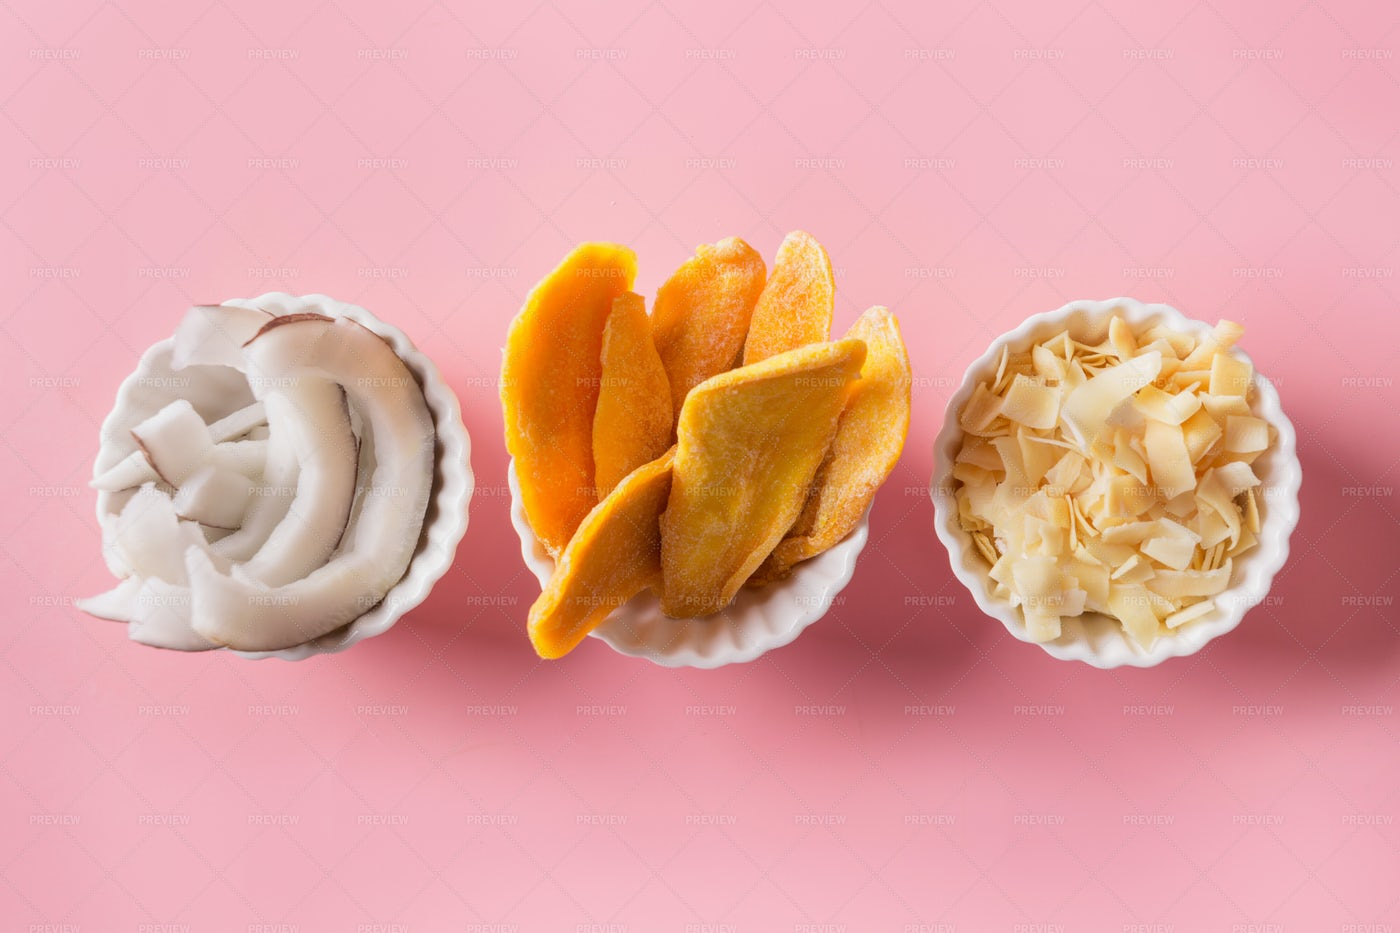 Dried Mango And Coconut: Stock Photos